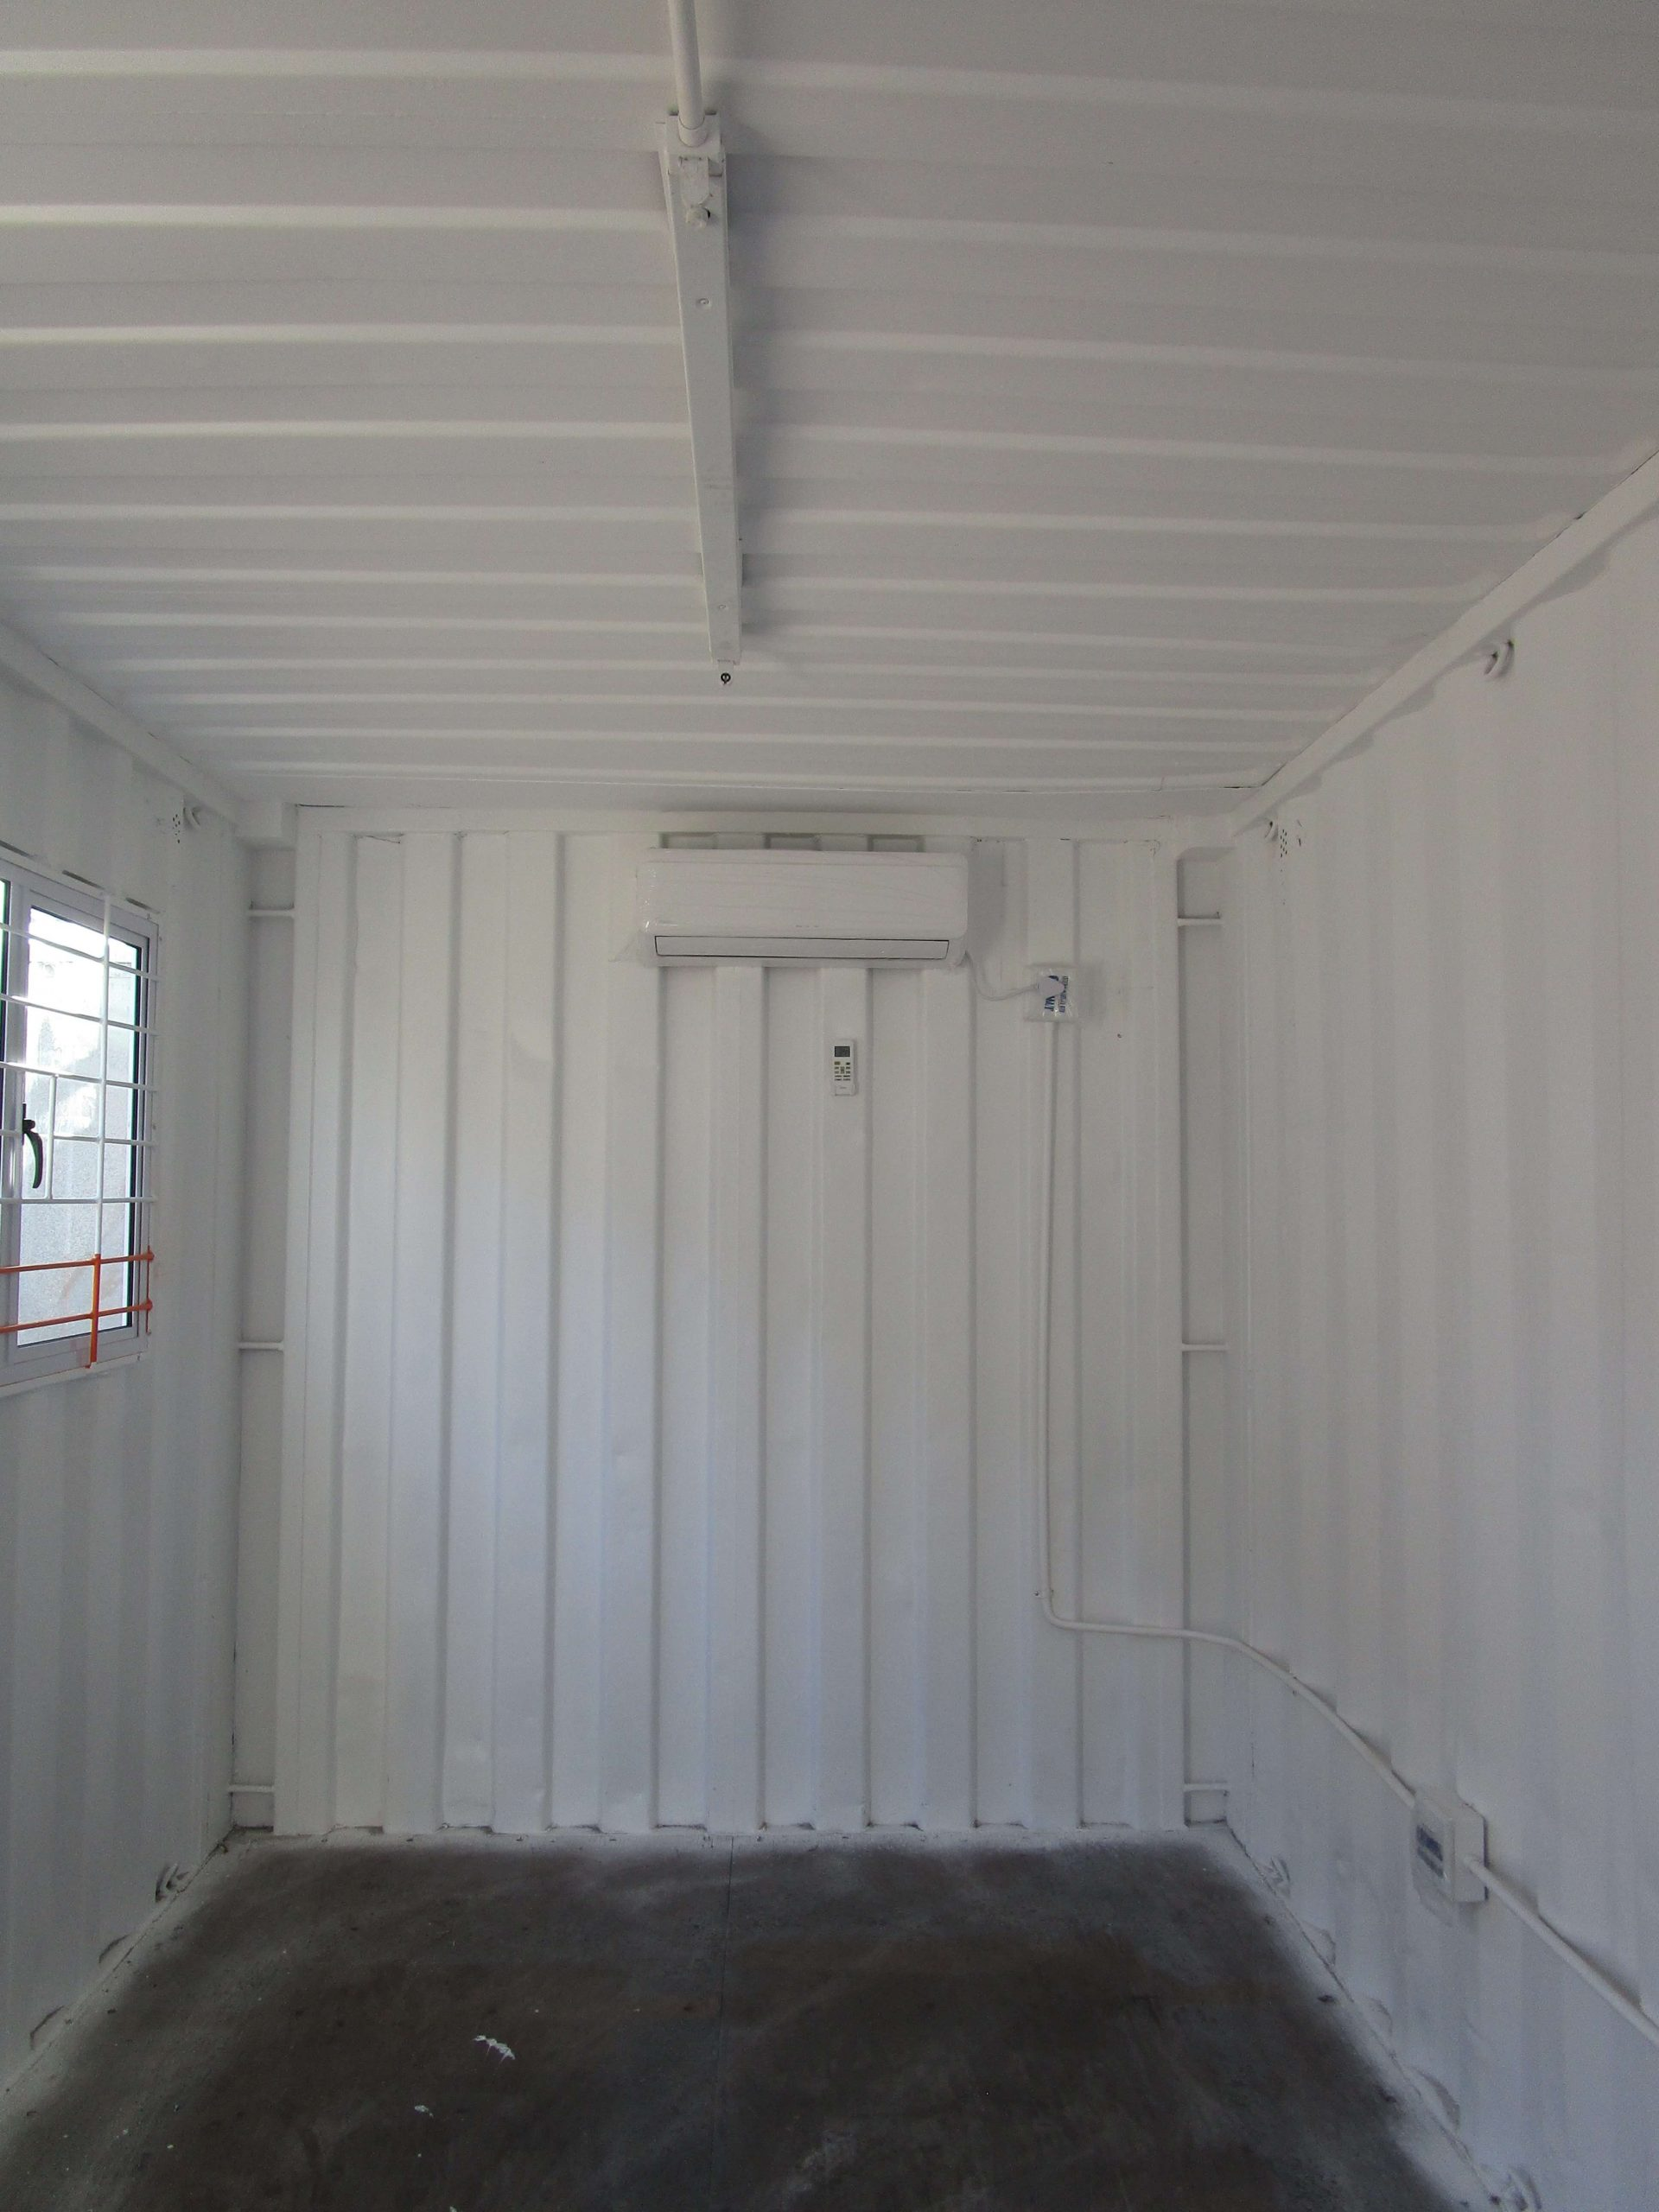 White With Orange Stripe Container Internal View| Container Rental & Sales